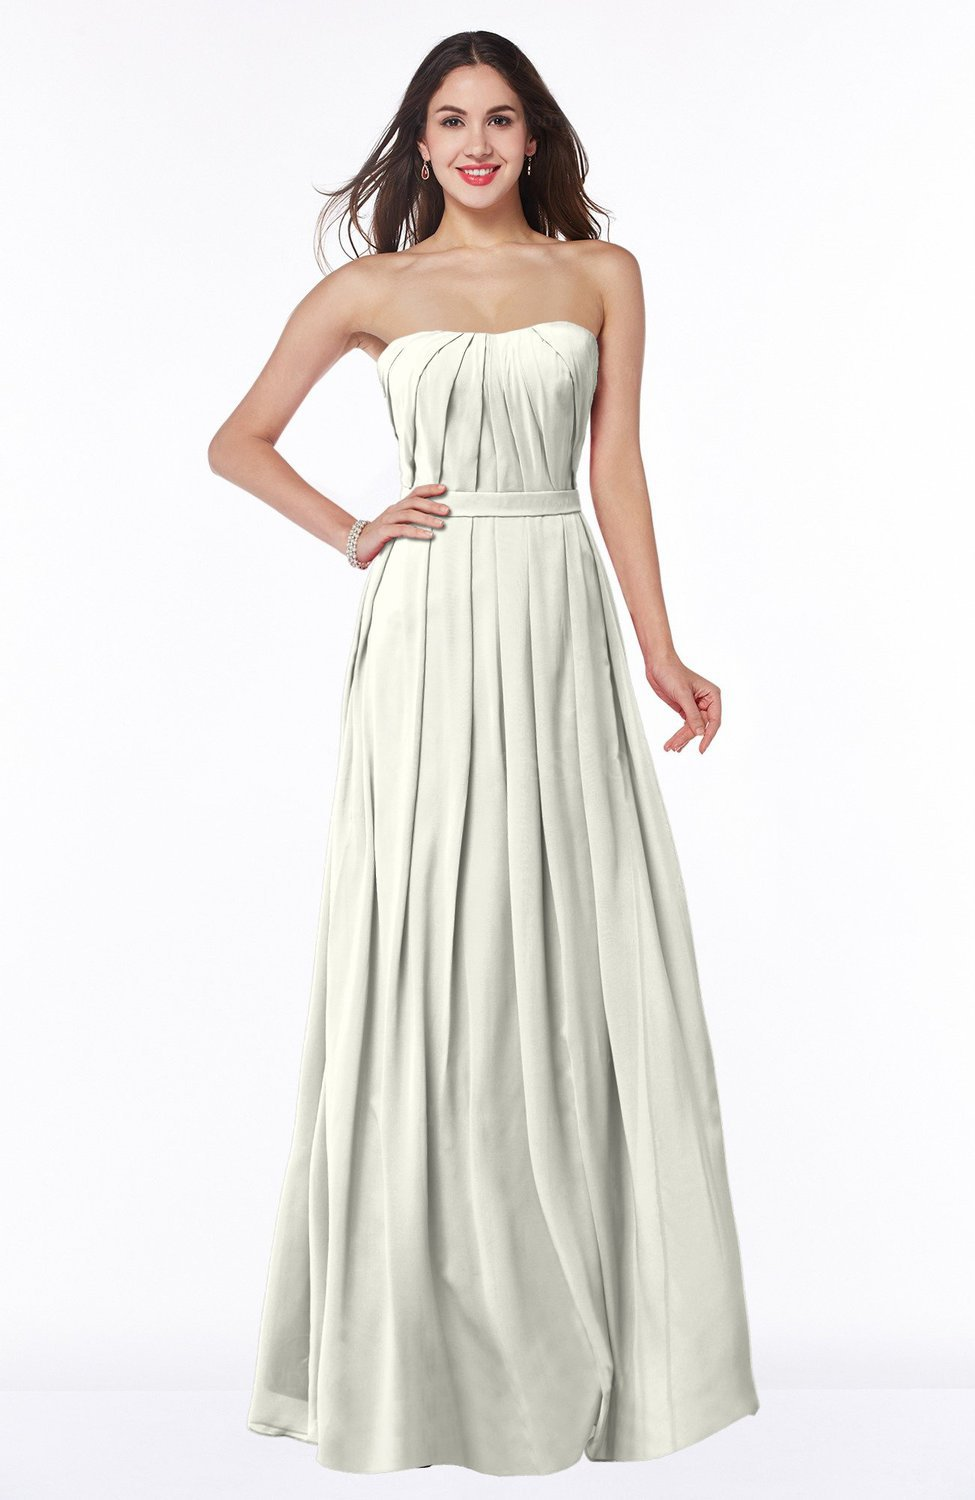 Simple Plus Size Wedding Dresses.Ivory Simple Strapless Sleeveless Zip Up Chiffon Ruching Plus Size Bridesmaid Dresses